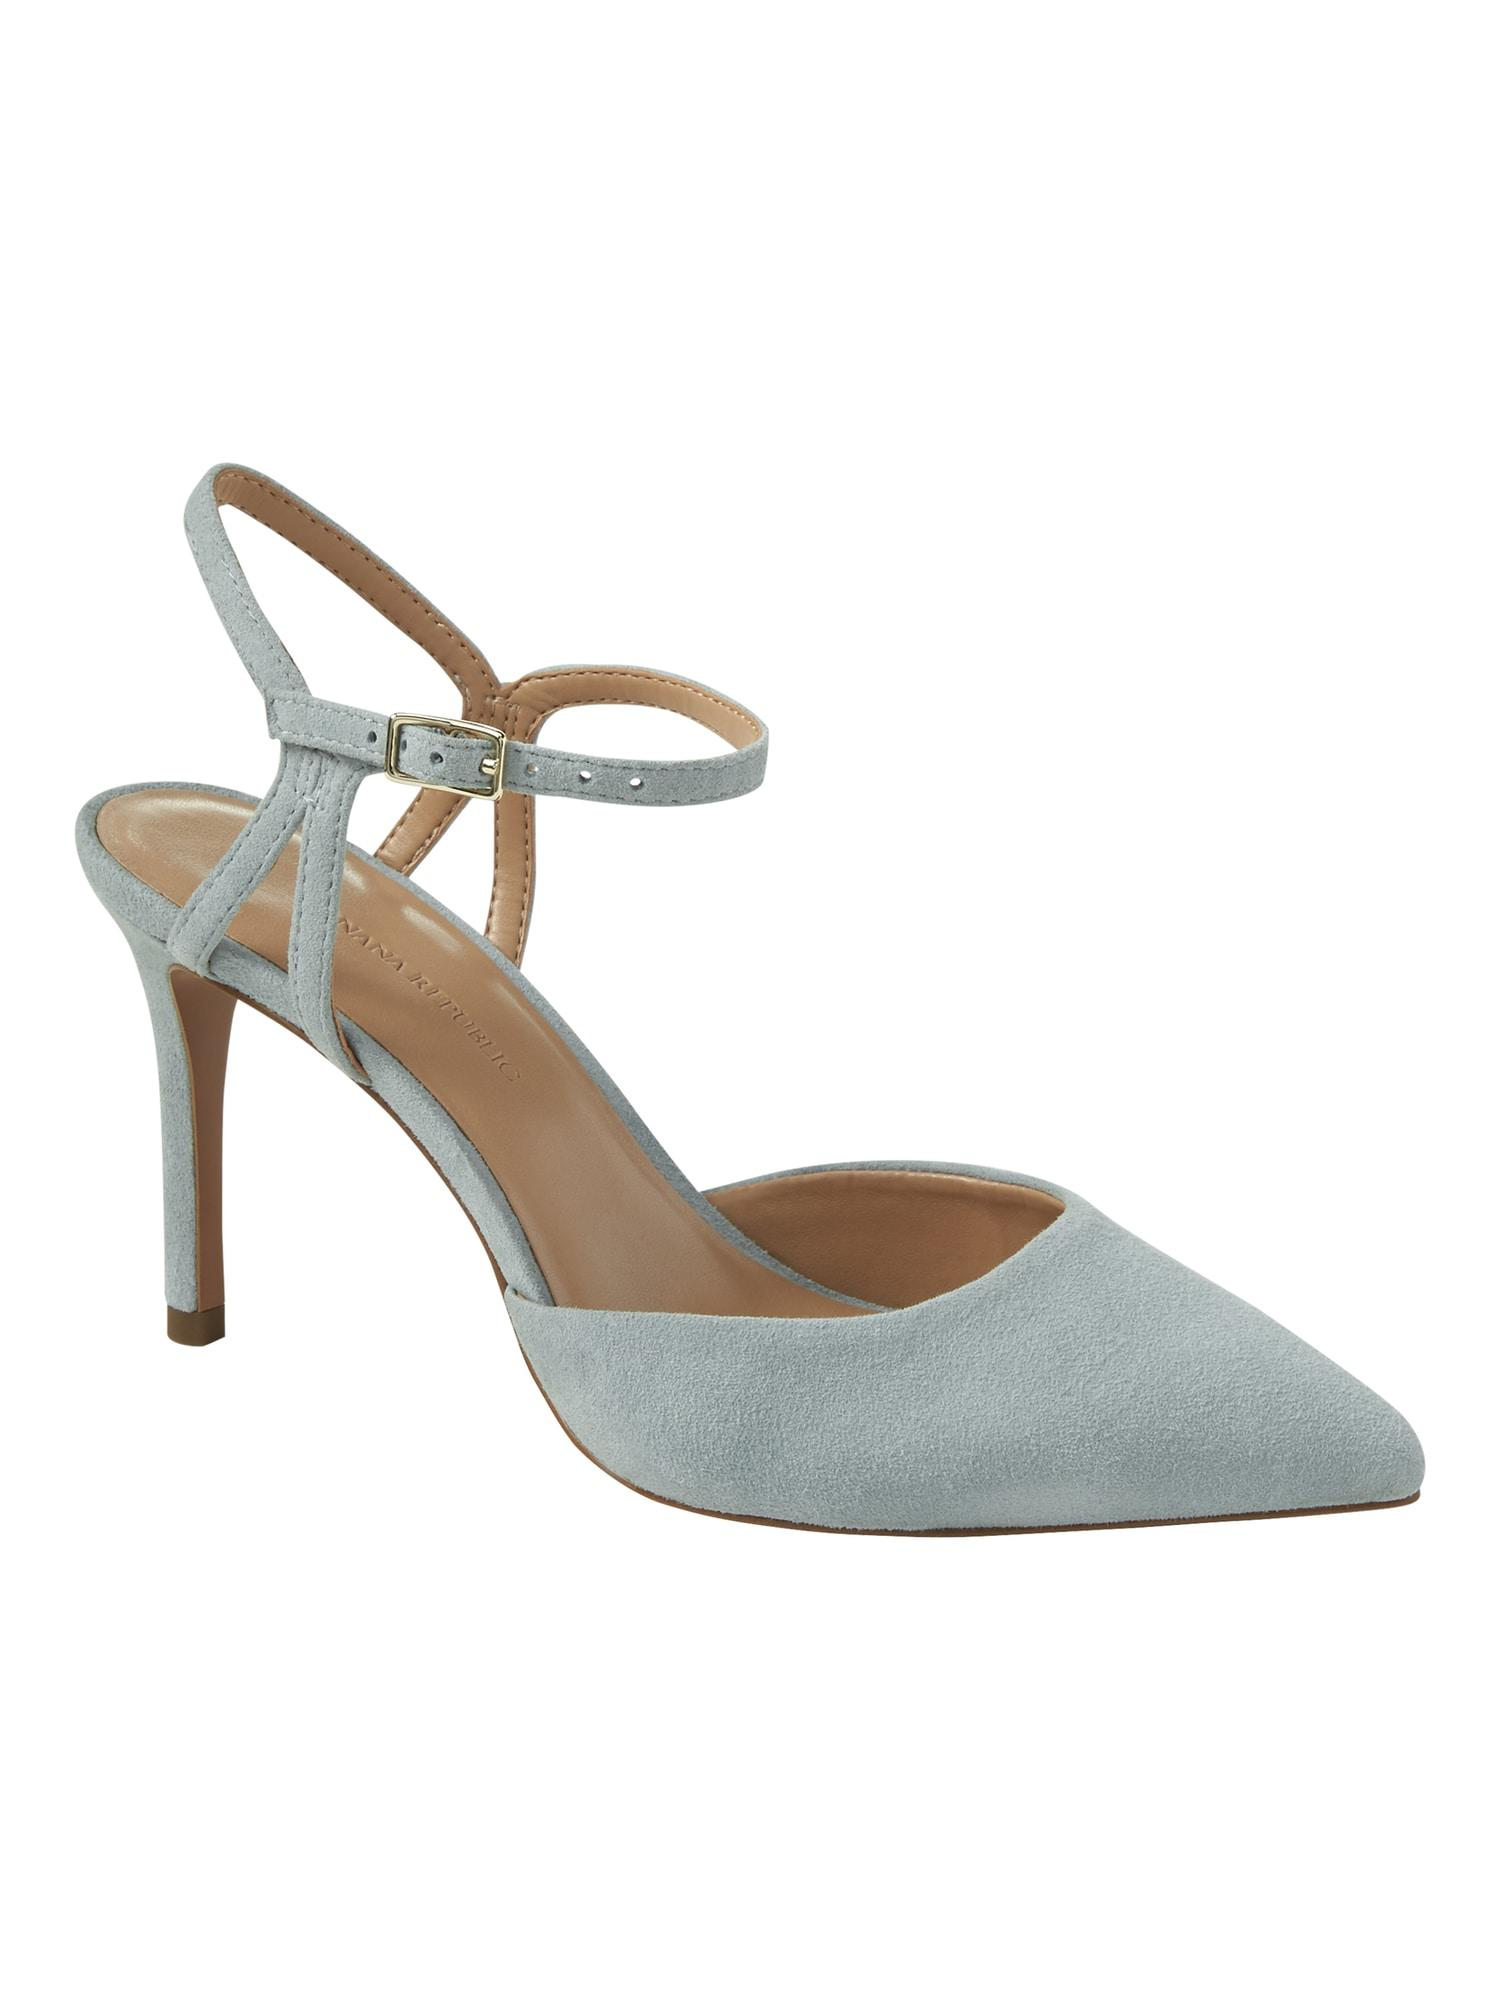 660ed9e94b40 Lyst - Banana Republic Madison 12-hour Side Cut-out Pump in Blue